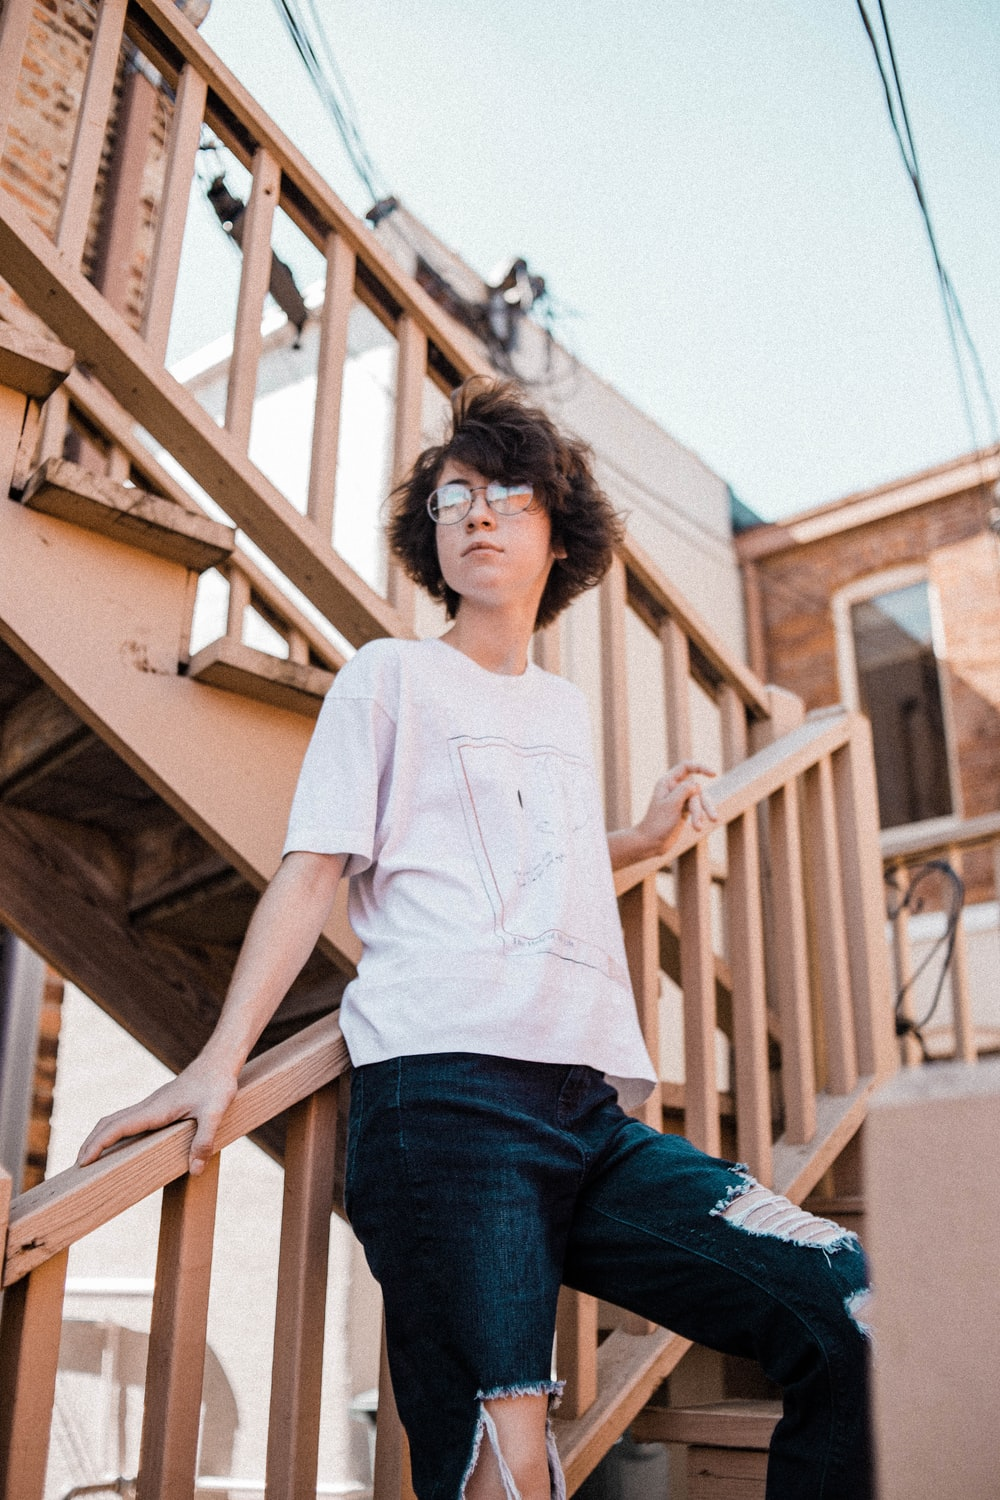 woman wearing white crew-neck t-shirt and distressed blue denim jeans standing on stairs during daytime